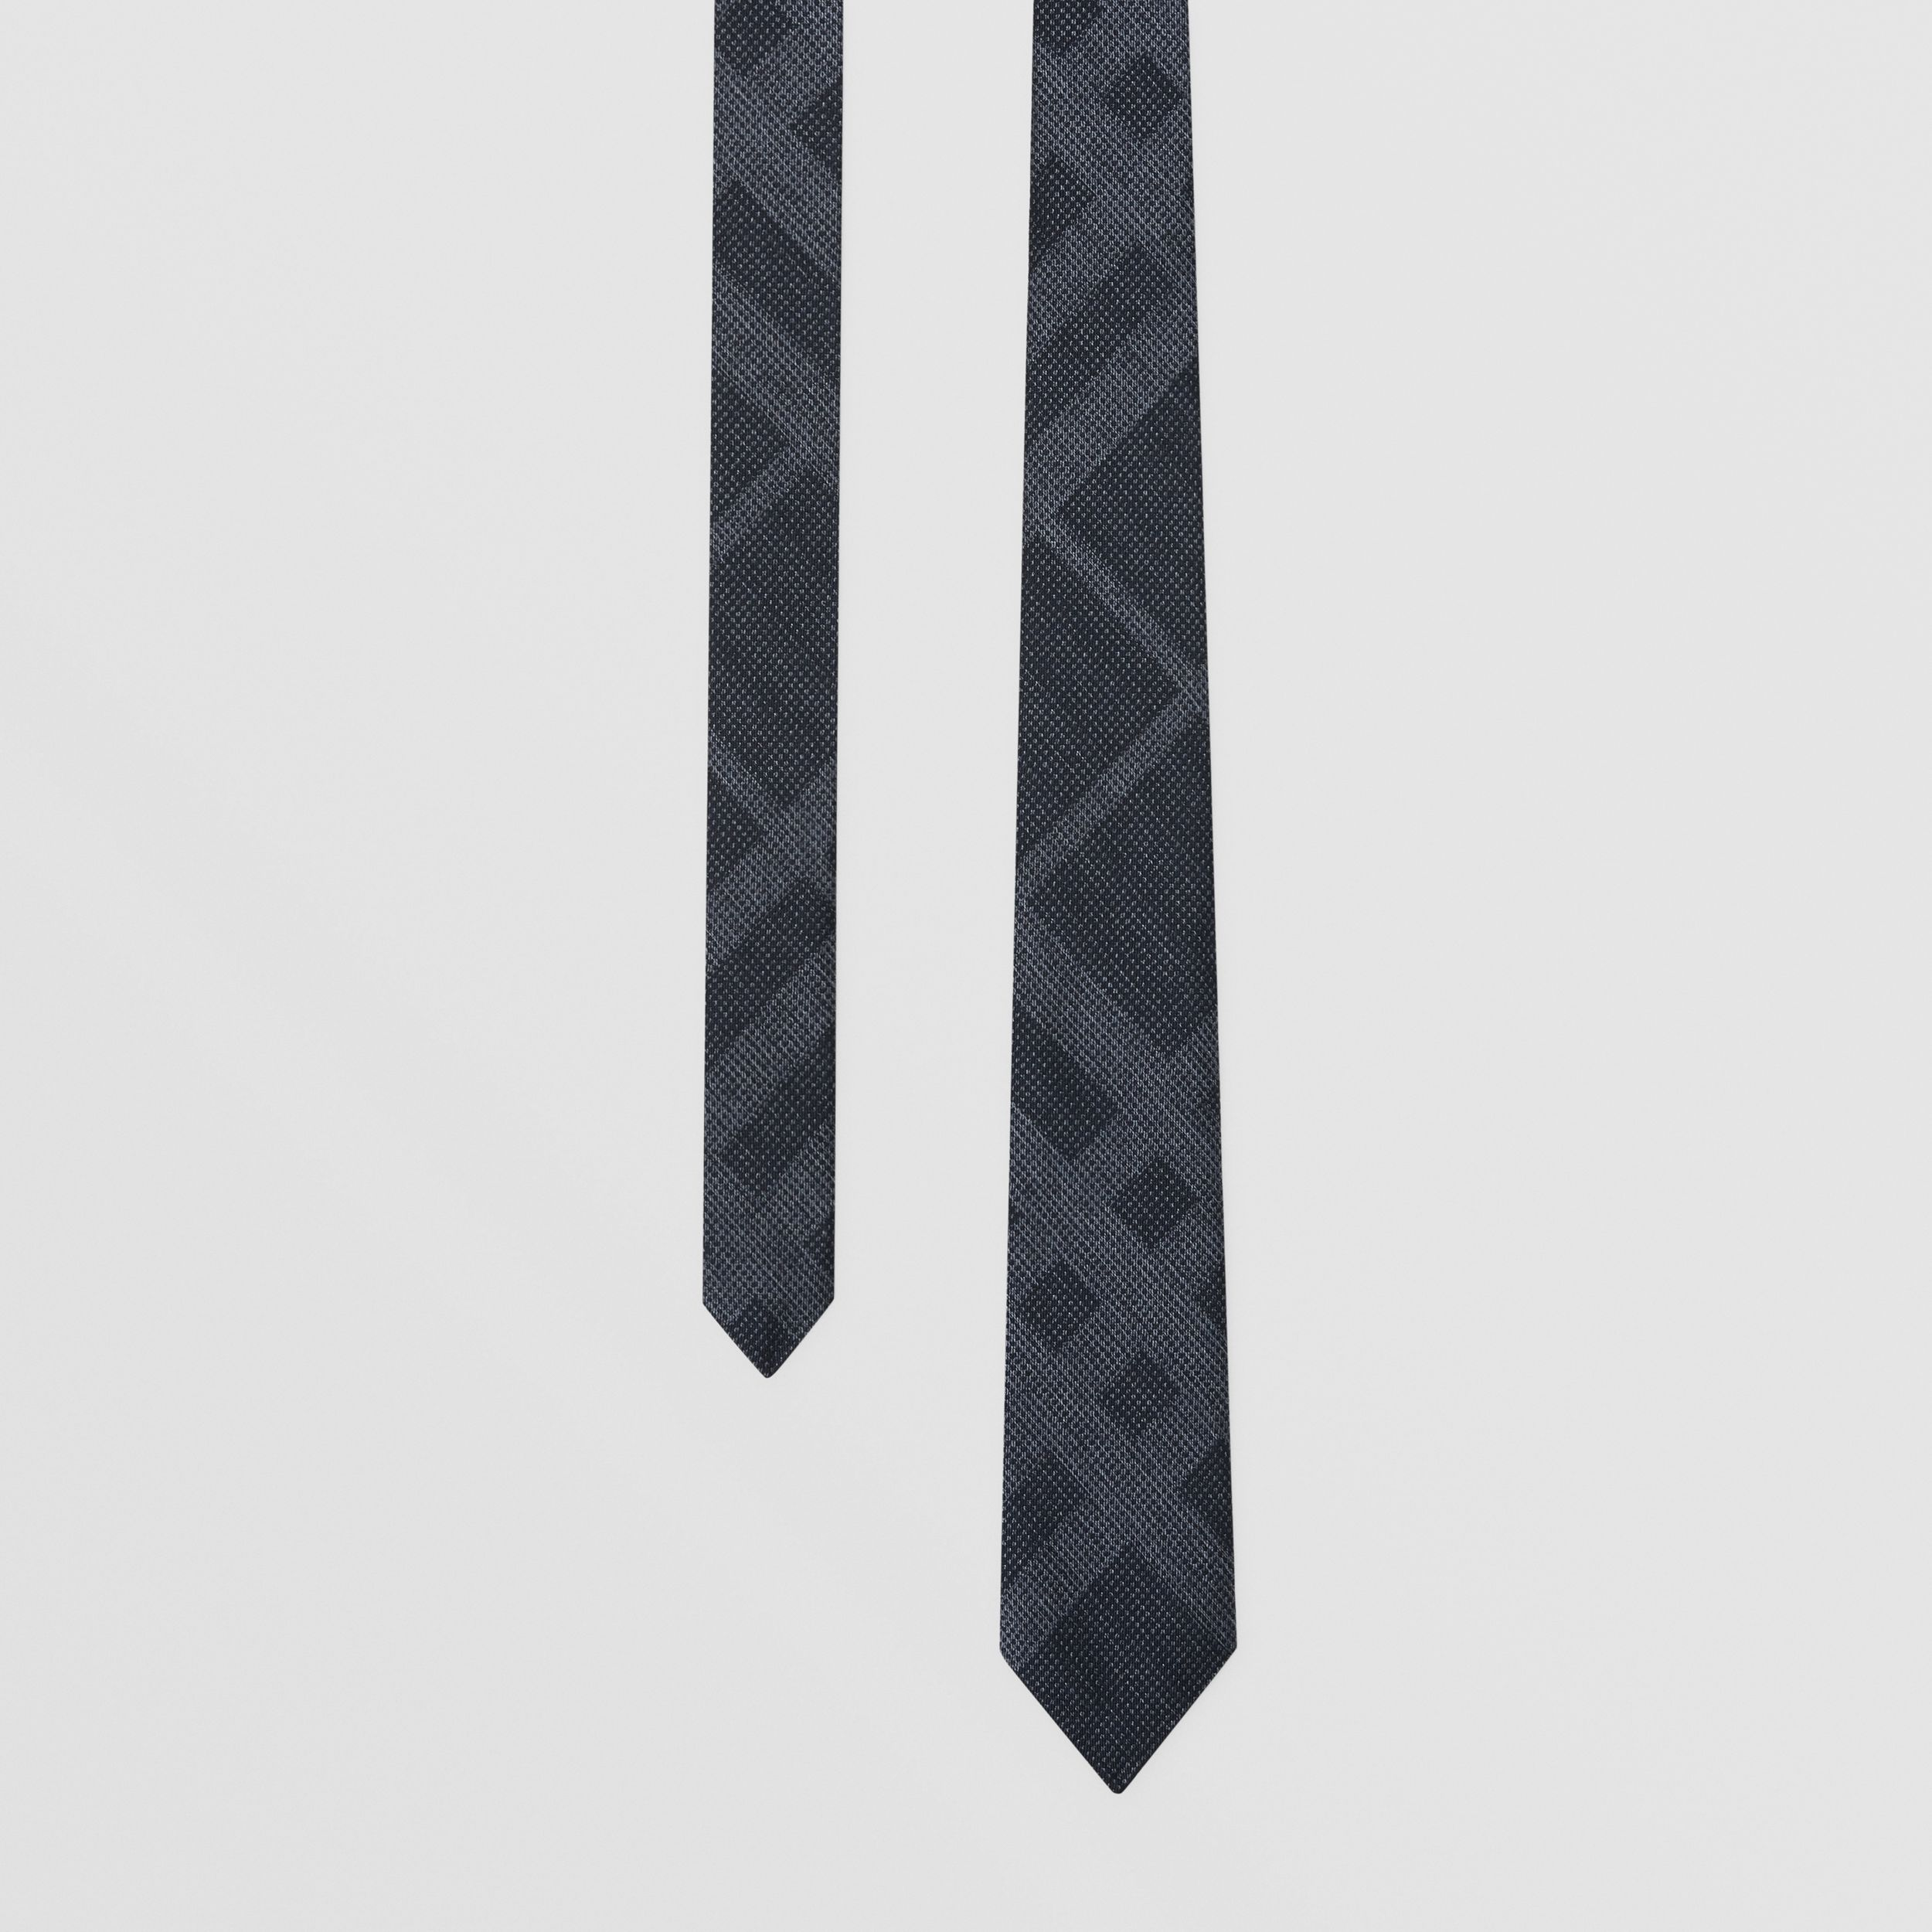 Classic Cut Check Silk Tie in Navy Melange - Men | Burberry - 1